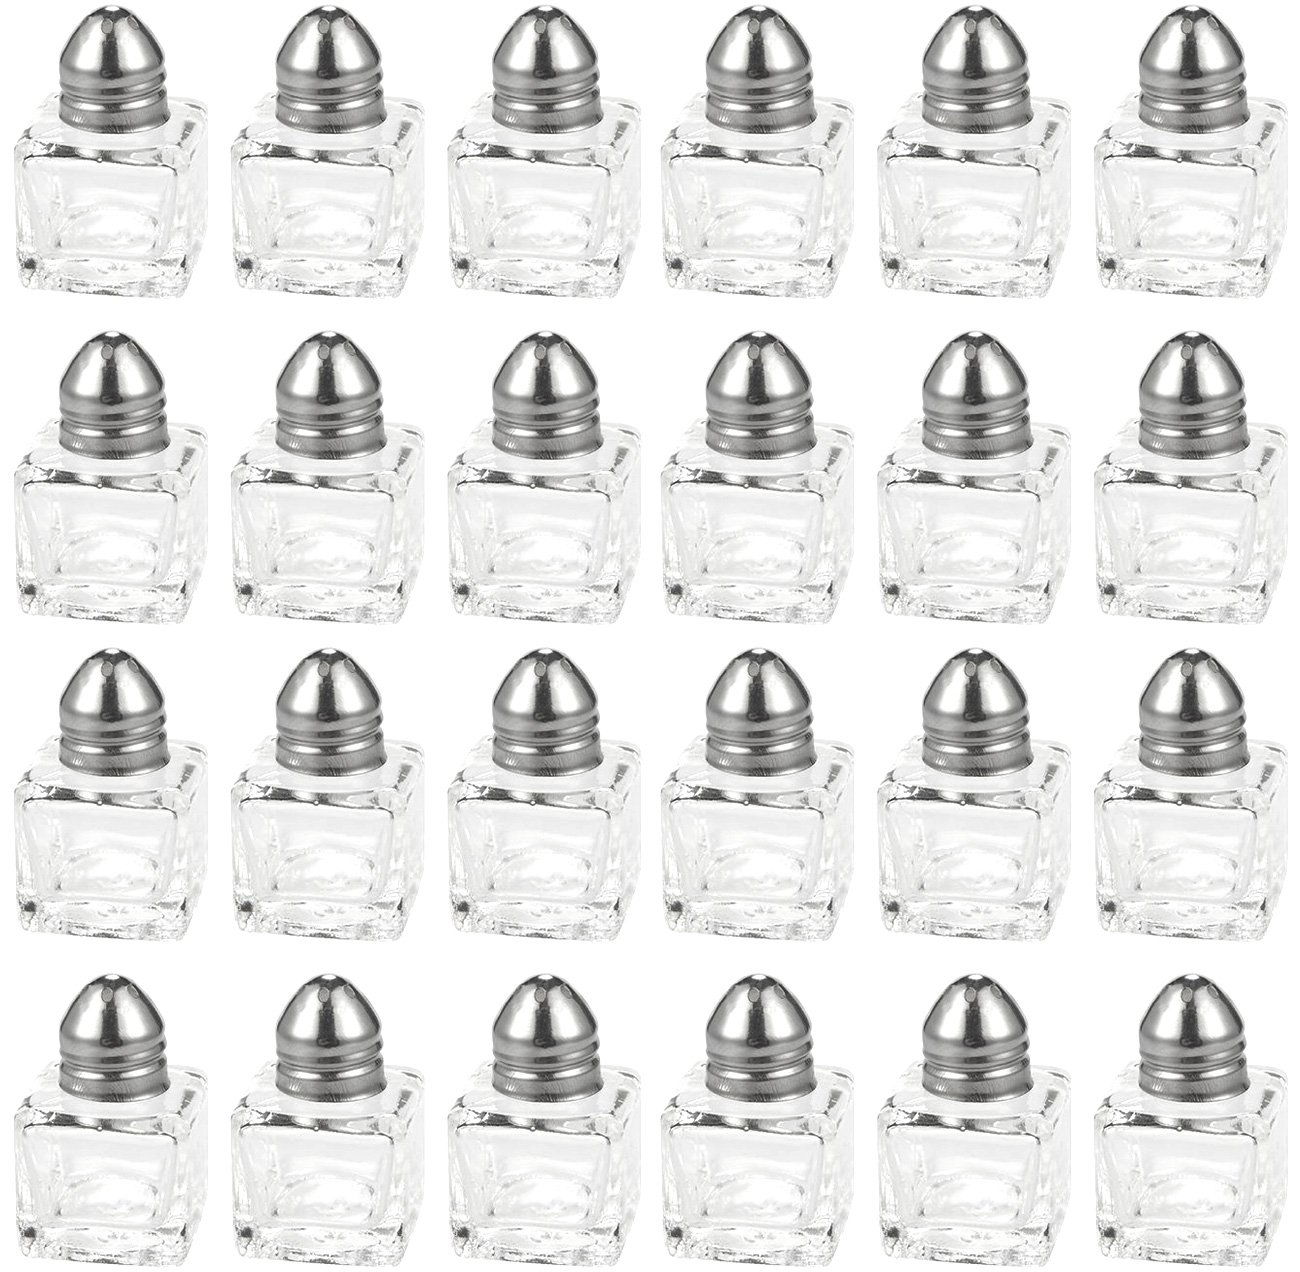 Salt and Pepper Shakers Set - 24-Piece Set of Salt Pepper Shakers, Glass Kitchenware, Mini Salt and Pepper Holders, Transparent, Holds 0.5 Oz by Juvale (Image #1)